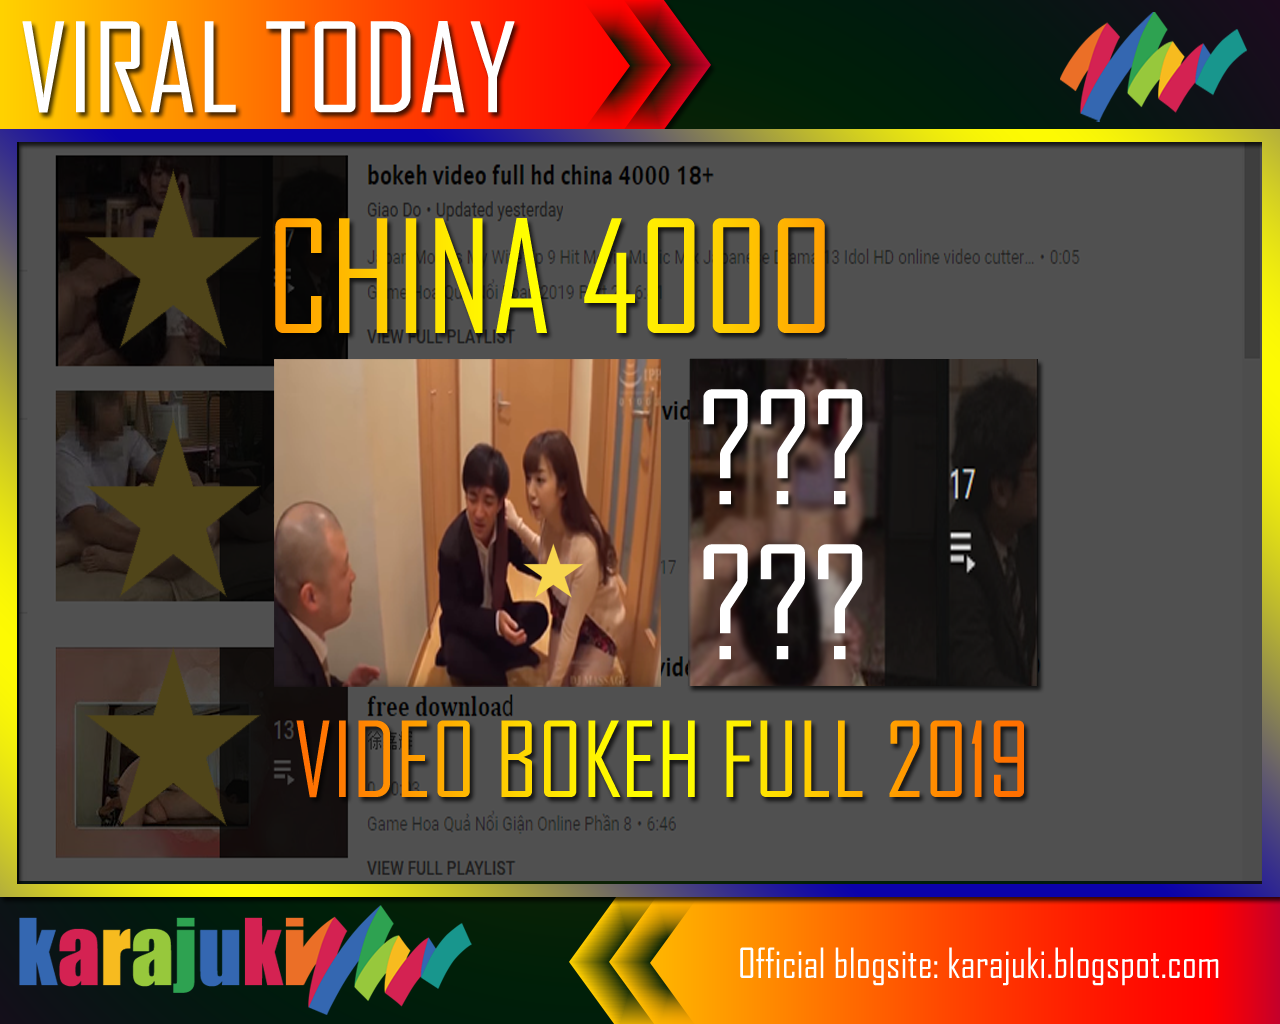 video bokeh full 2019 china 4000 download free asli mp3